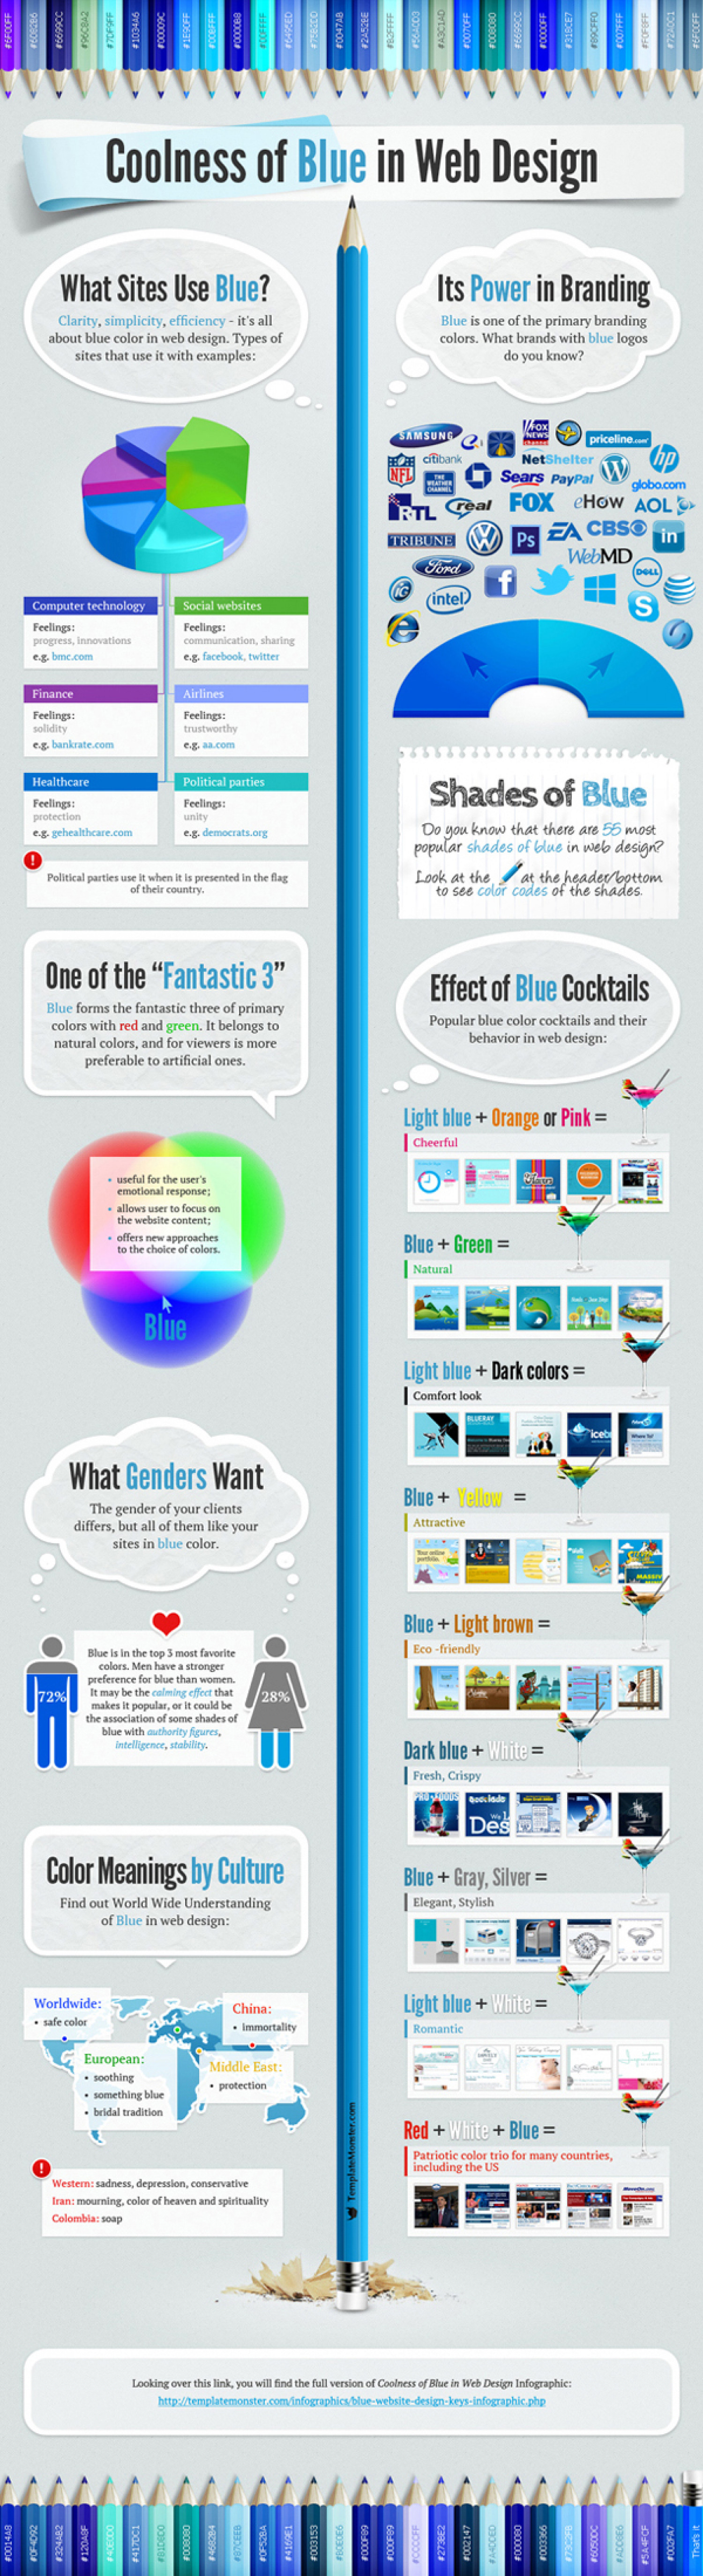 Blue in Web Design Infographic